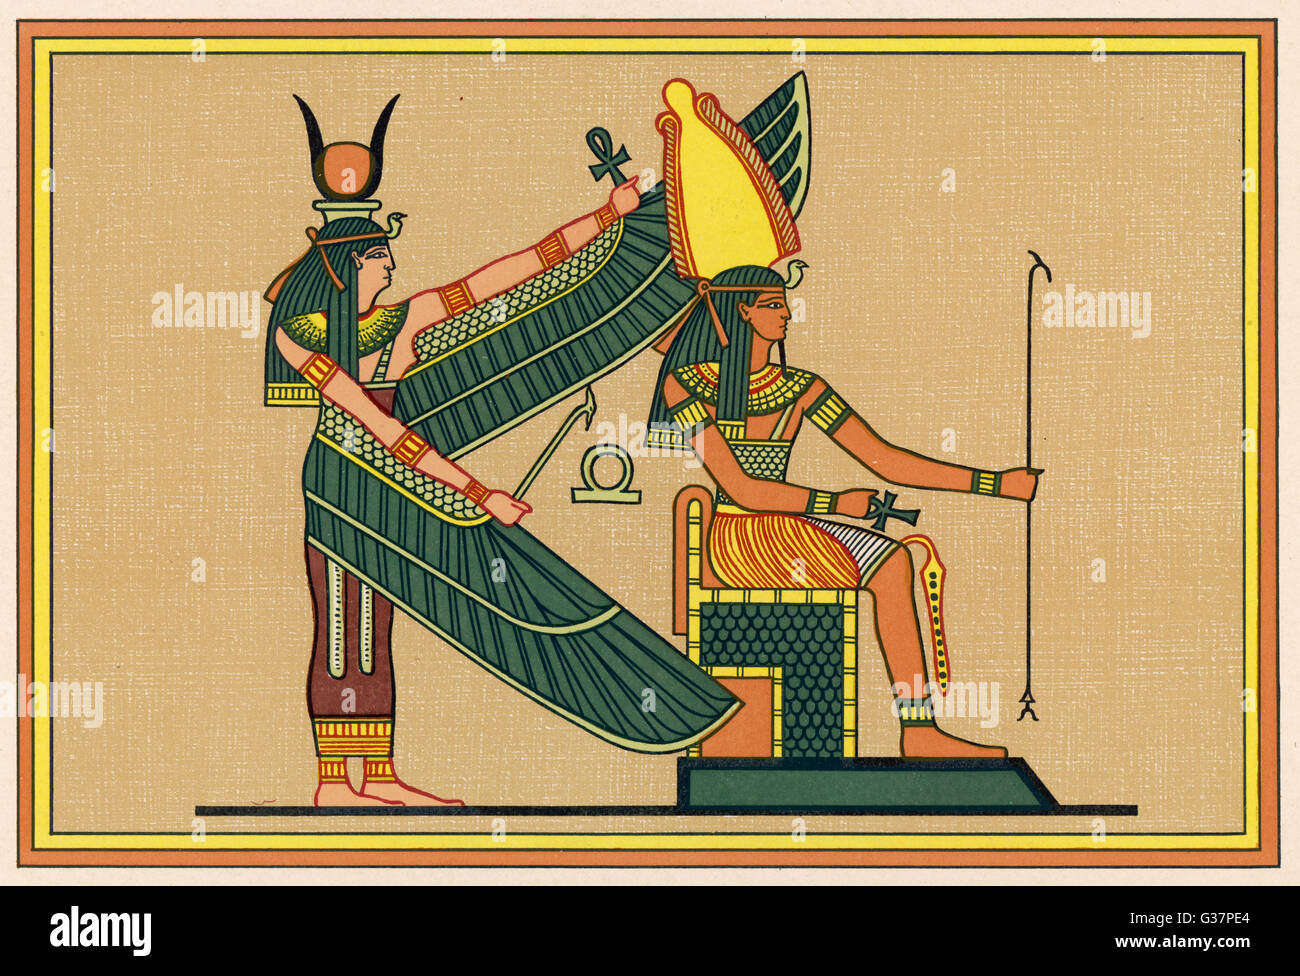 ISIS with PTAH-SEKER-AUSAR god of the resurrection - Stock Image